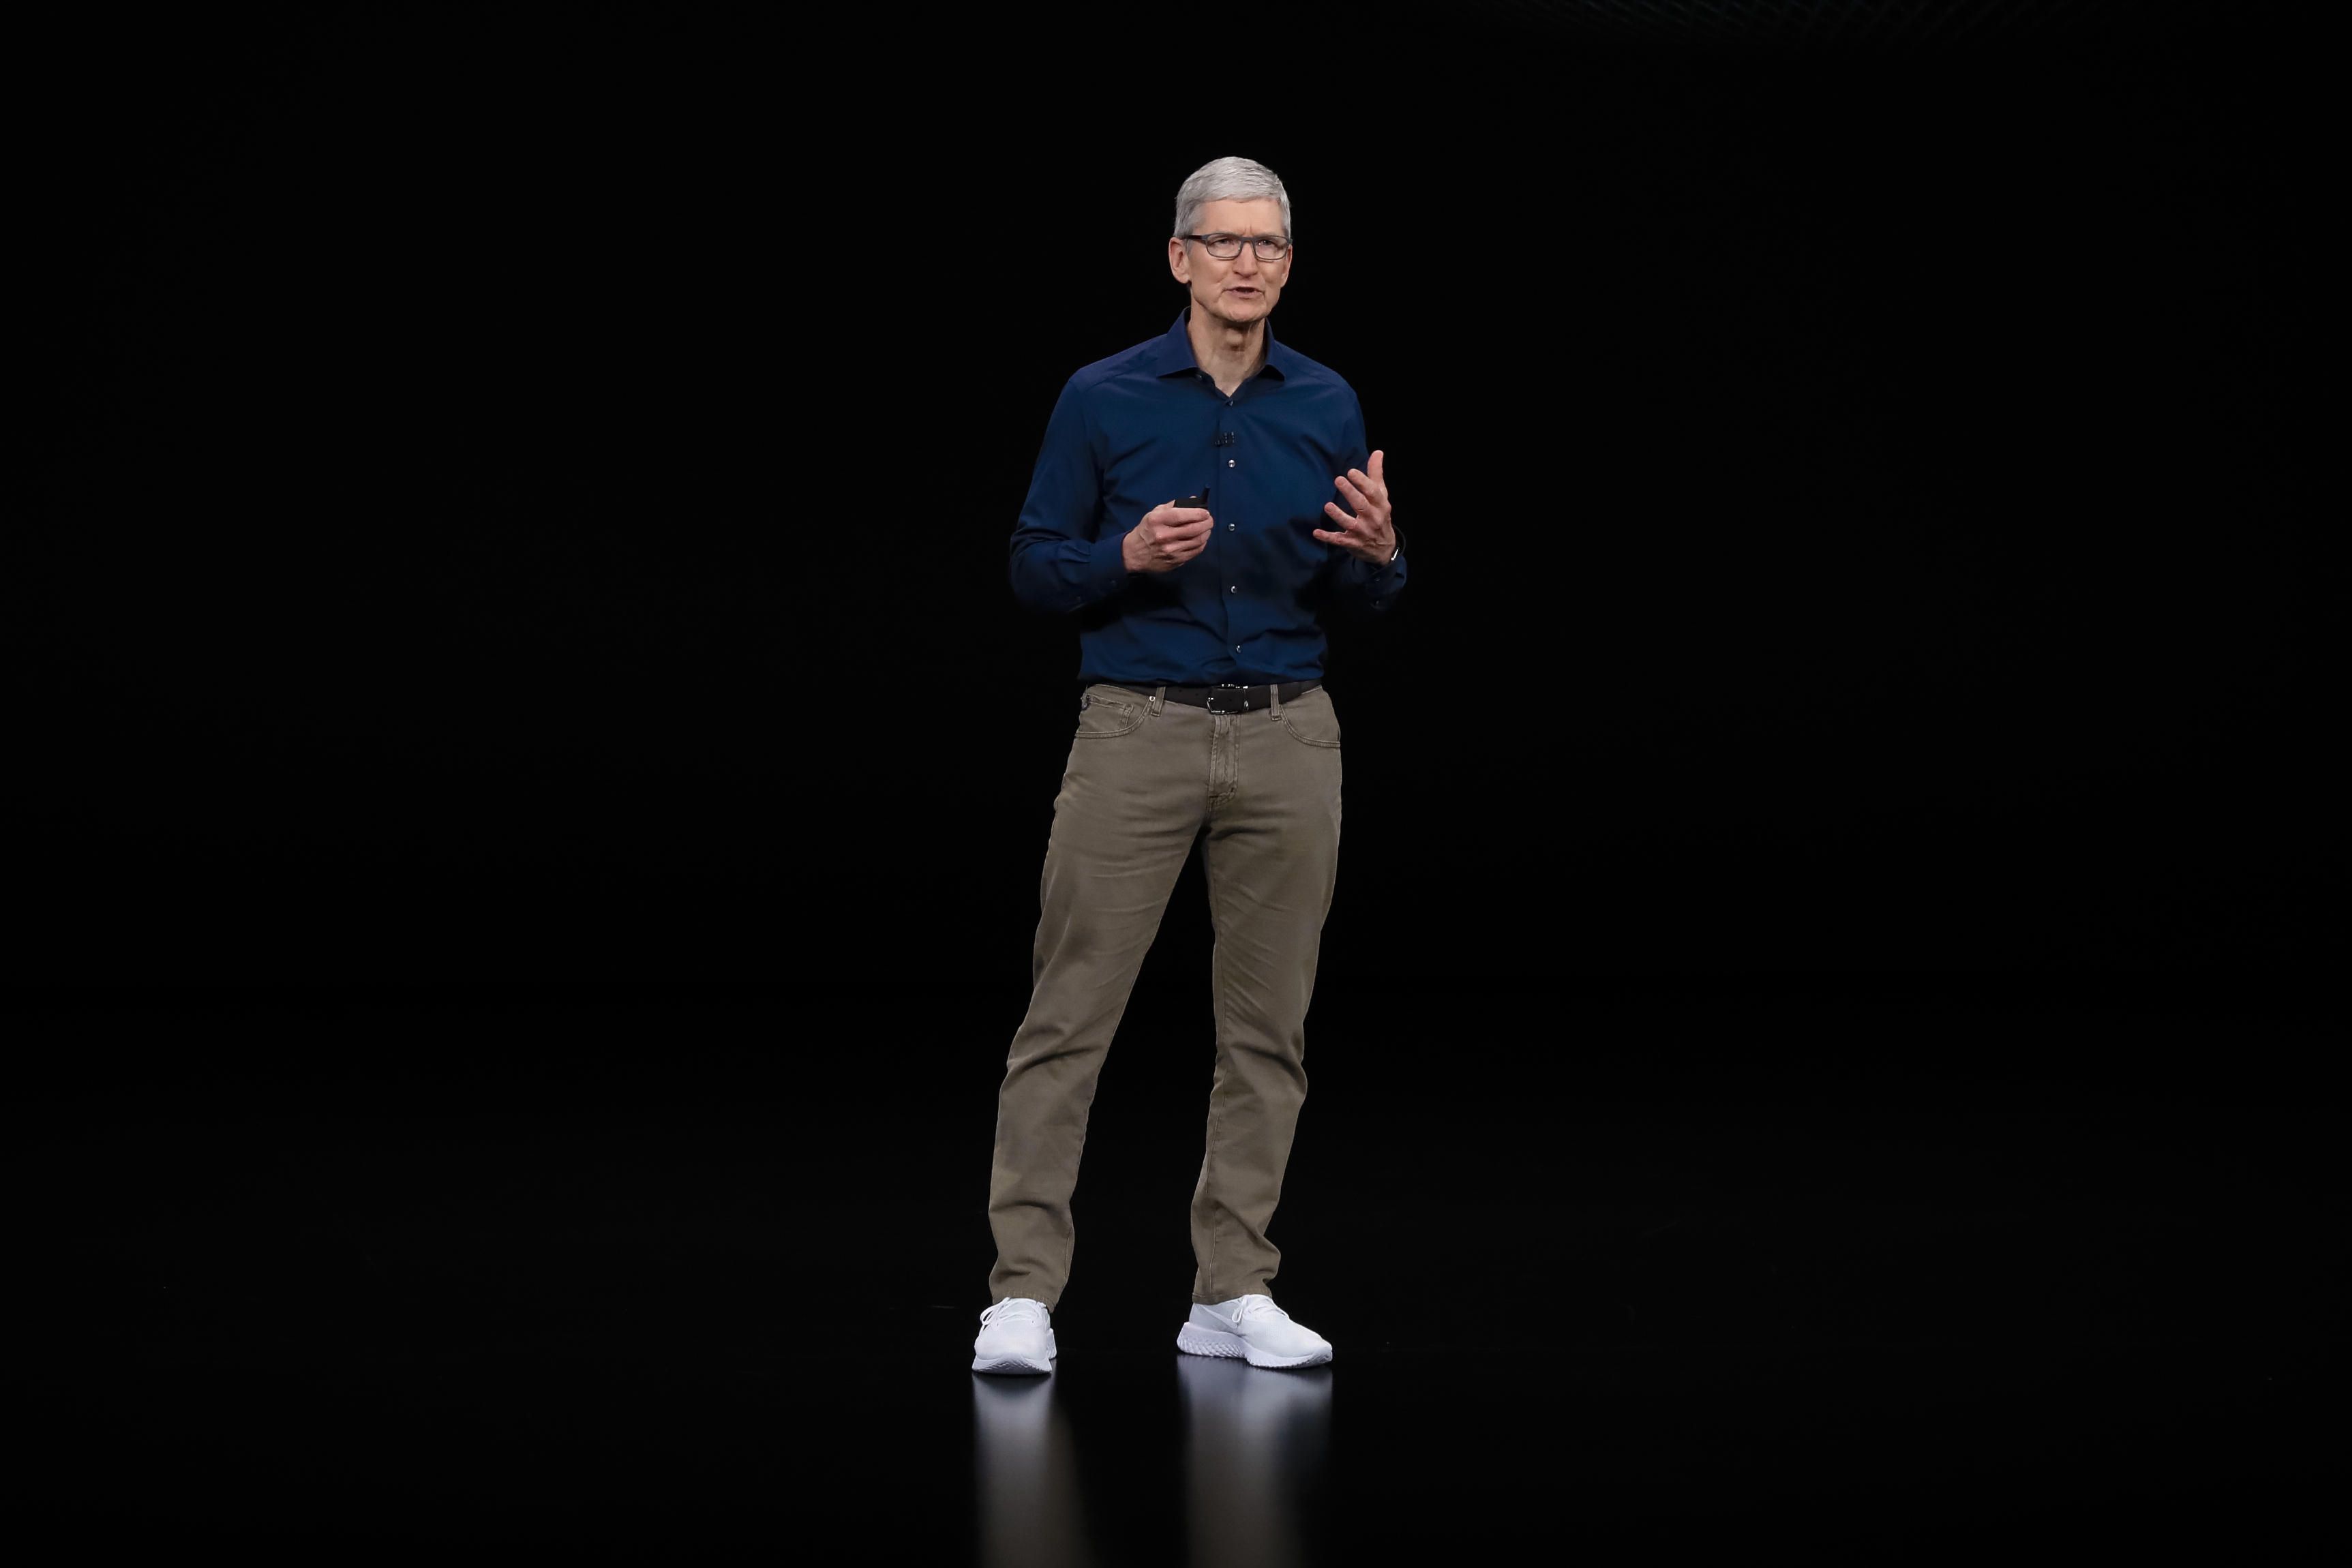 apple-event-091218-tim-cook-0432